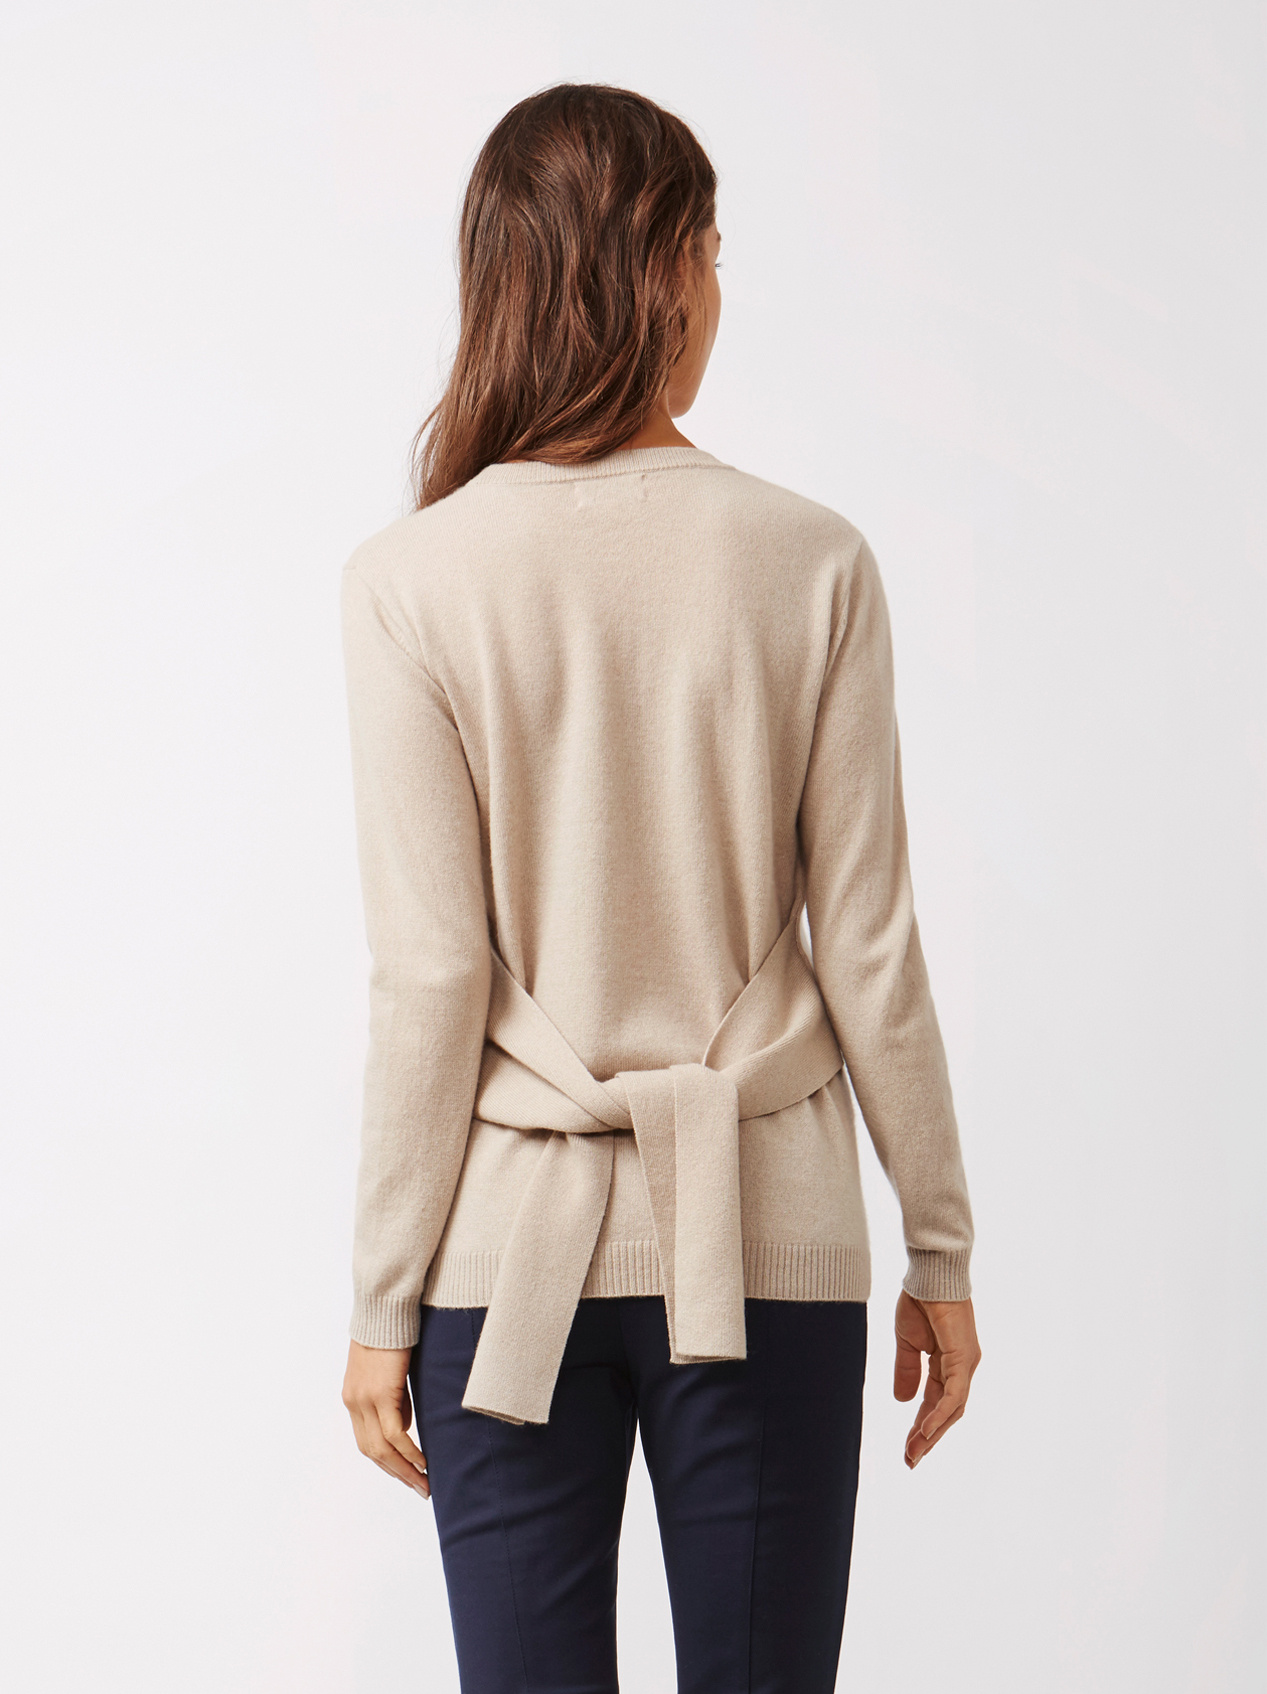 Soft Goat Women's Knot Sweater Sand